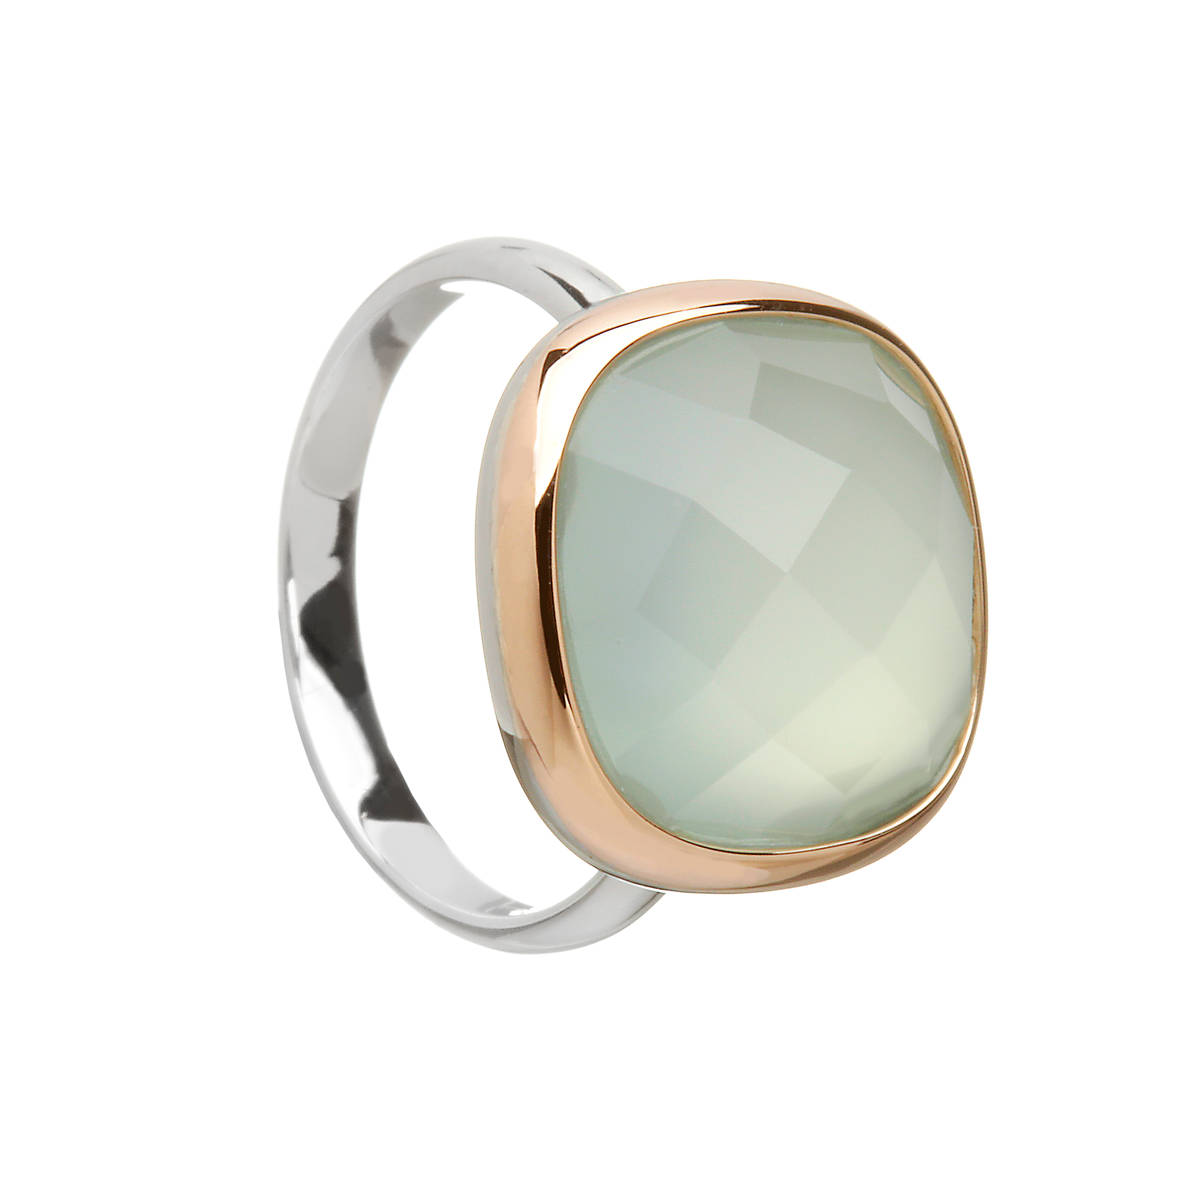 House of Lor silver/rose gold blue chalcedony stone ring with outer rim made from rare Irish goldtick/okcck